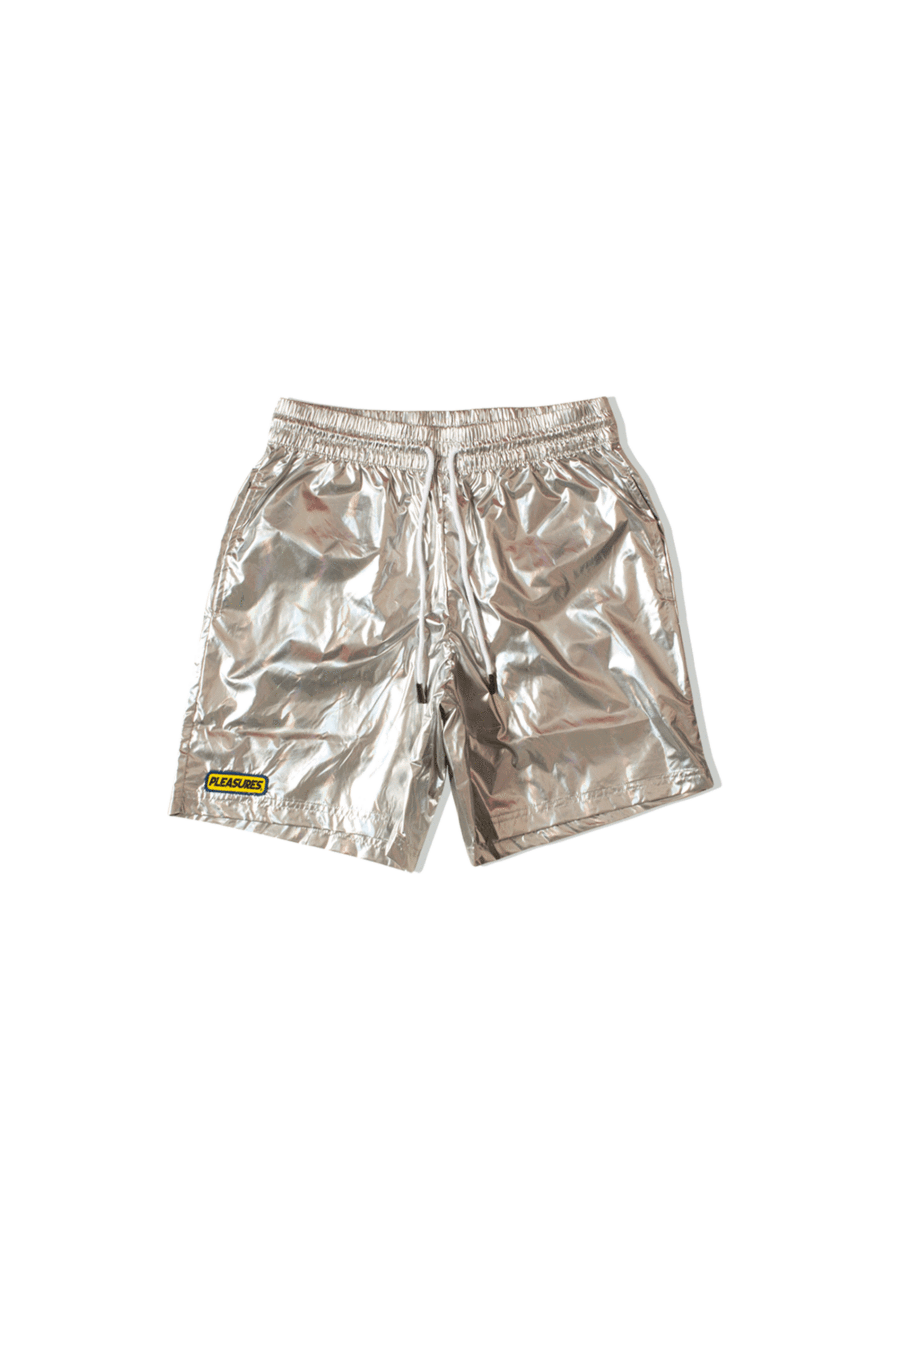 Pleasures Shorts Liquid Metallic Shorts Grey P19S105007#040#SILV#S - One Block Down